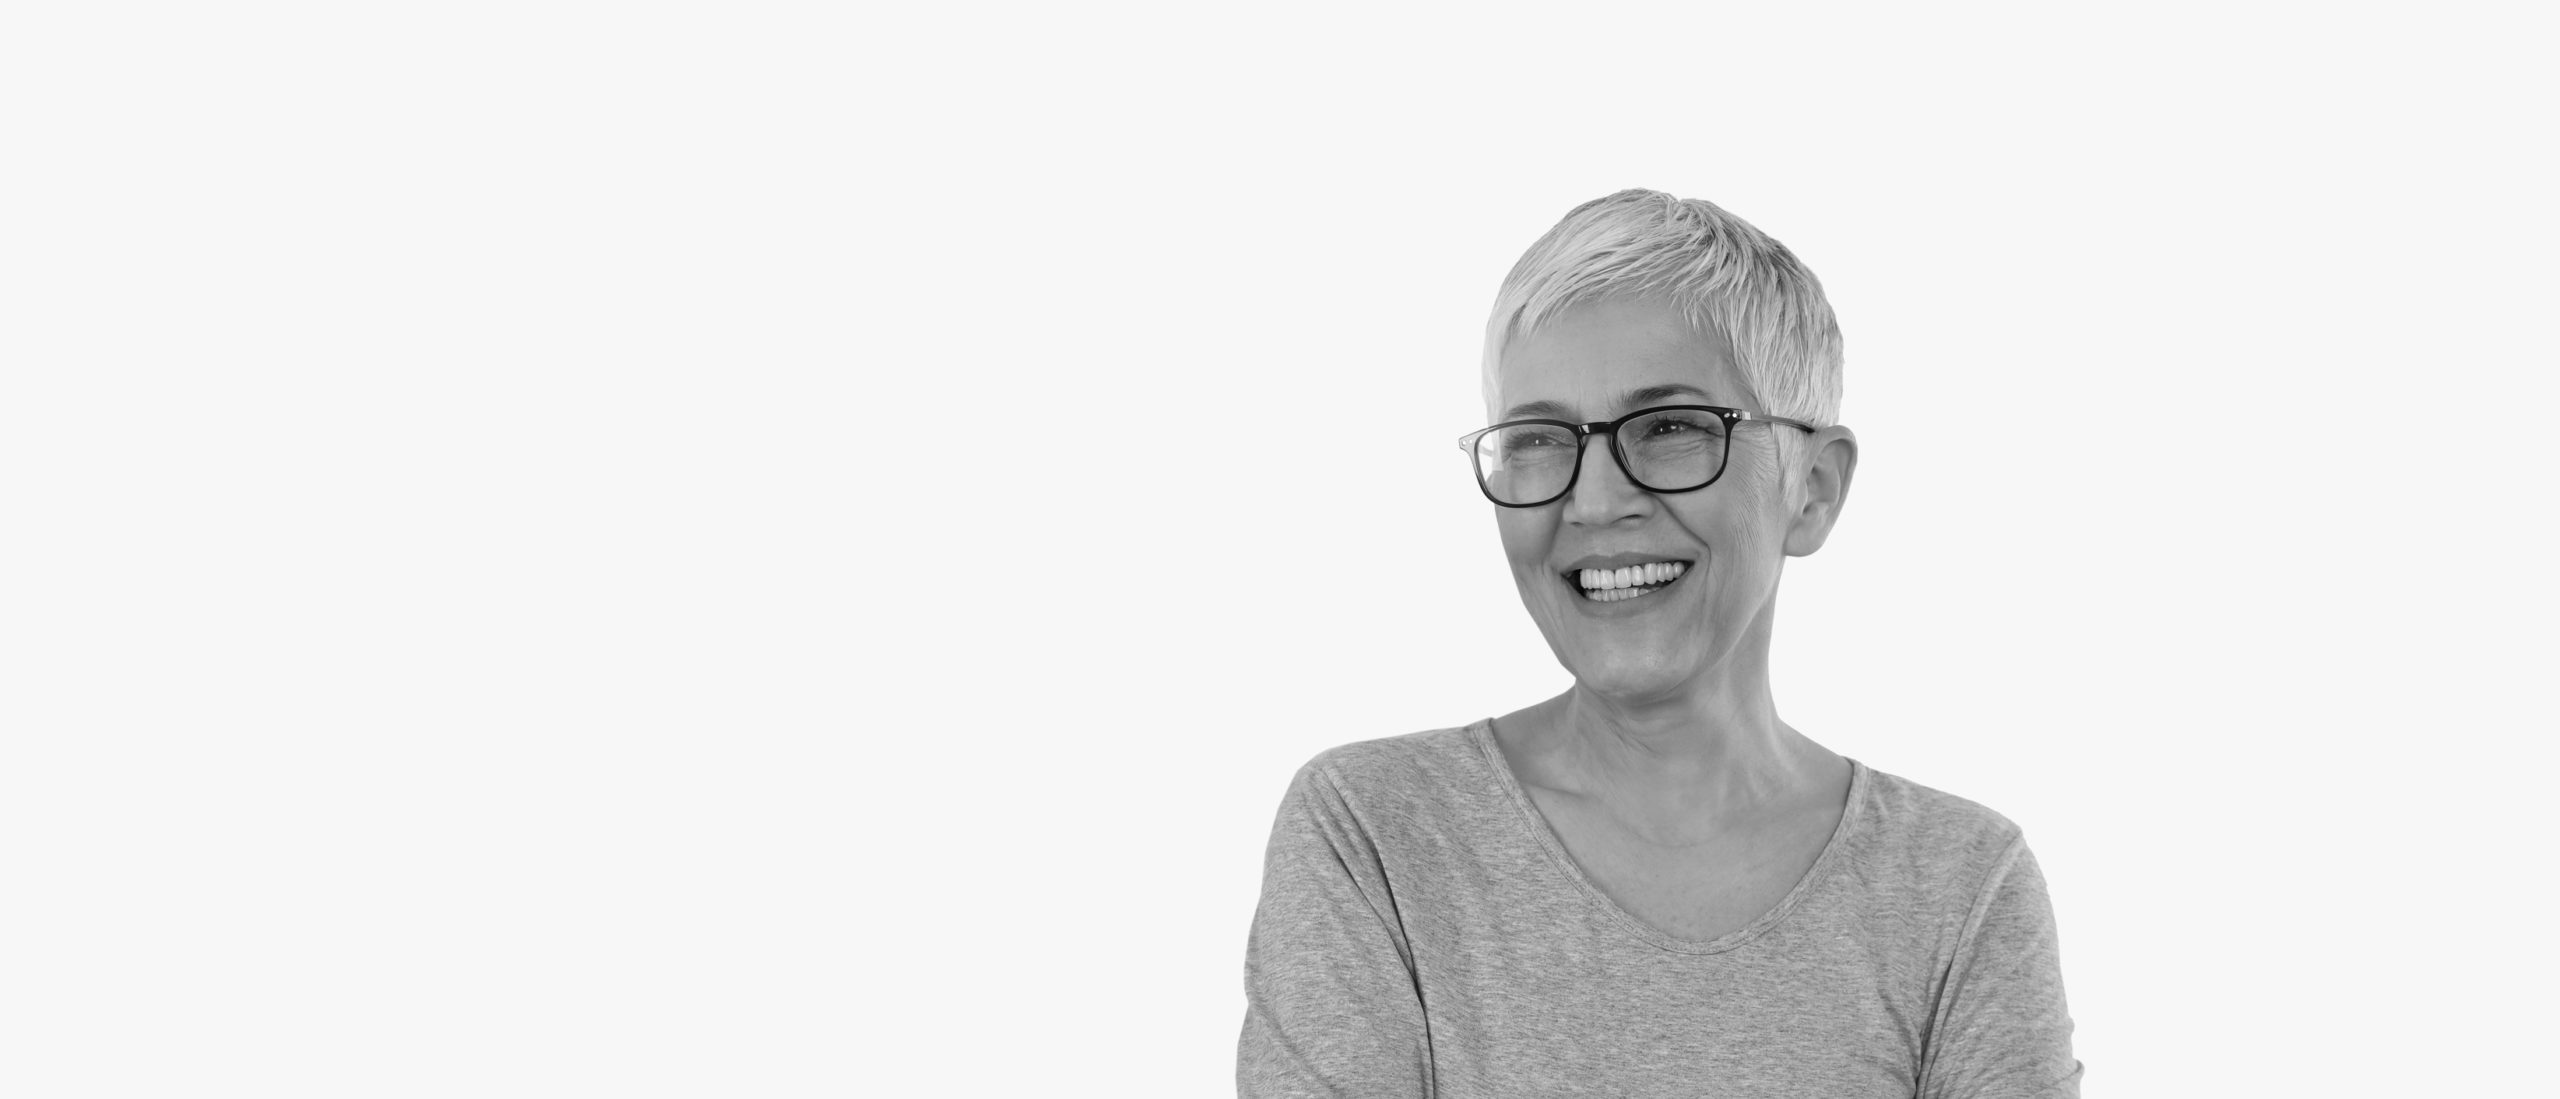 lady with glasses in black and white on light grey background smiling showing full dentures